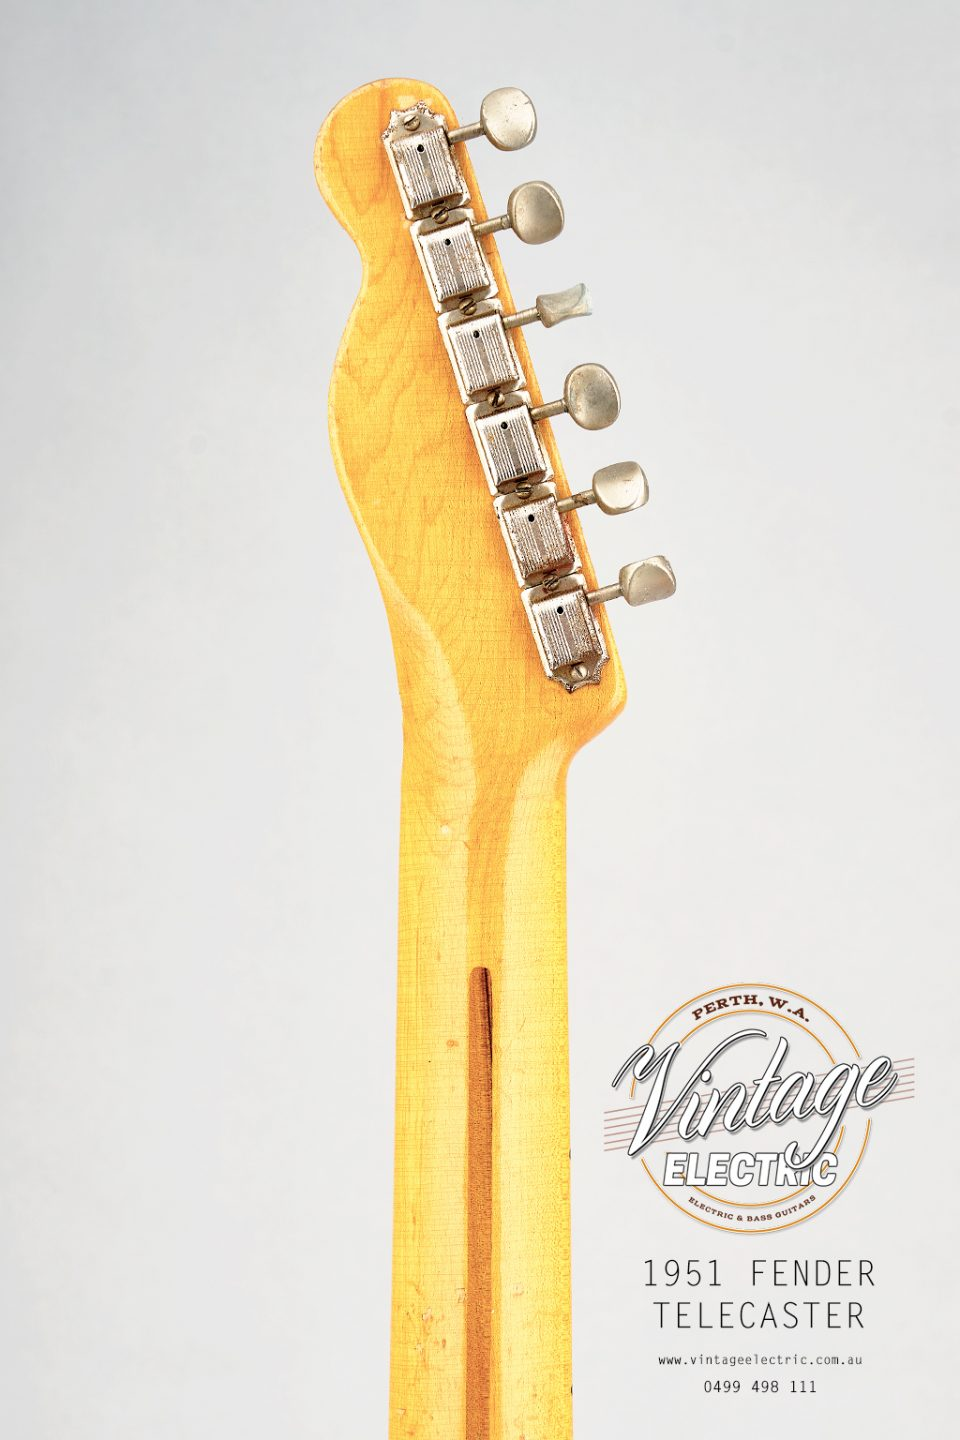 1951 Fender Telecaster USA Back of Headstock